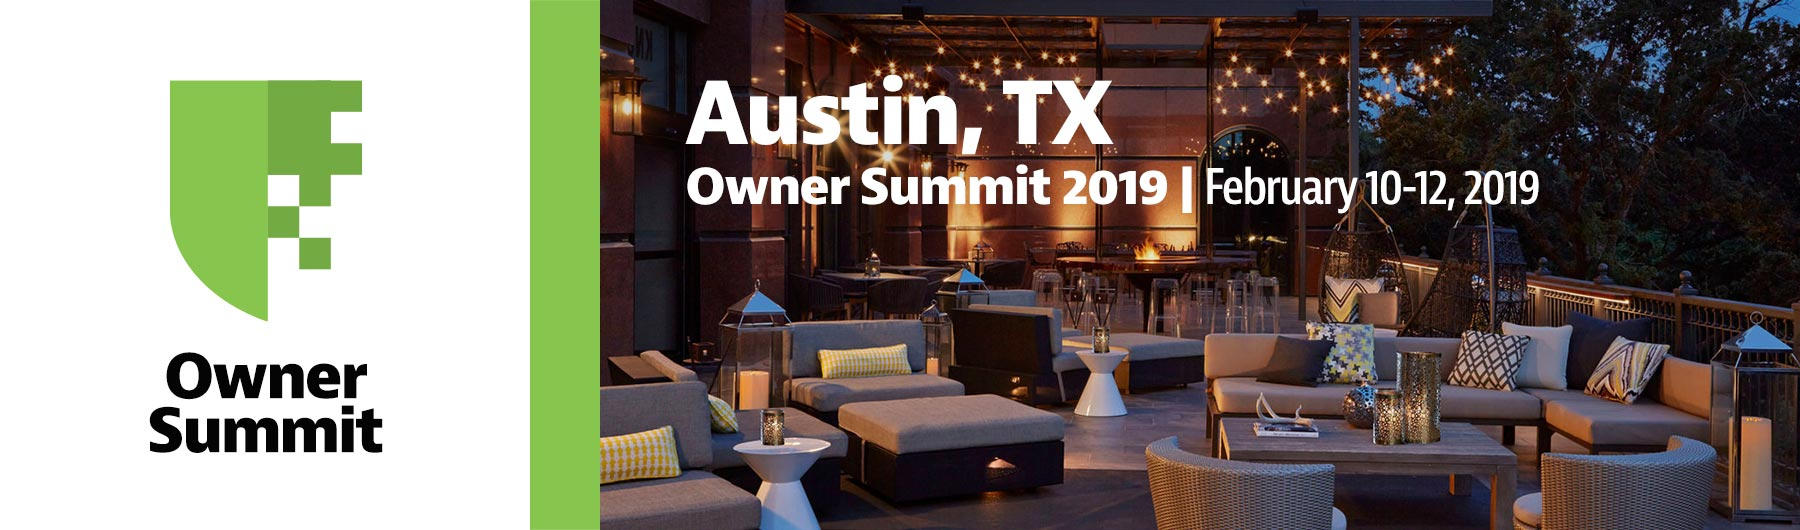 COMPLETE: Owner Summit 2019 | Austin